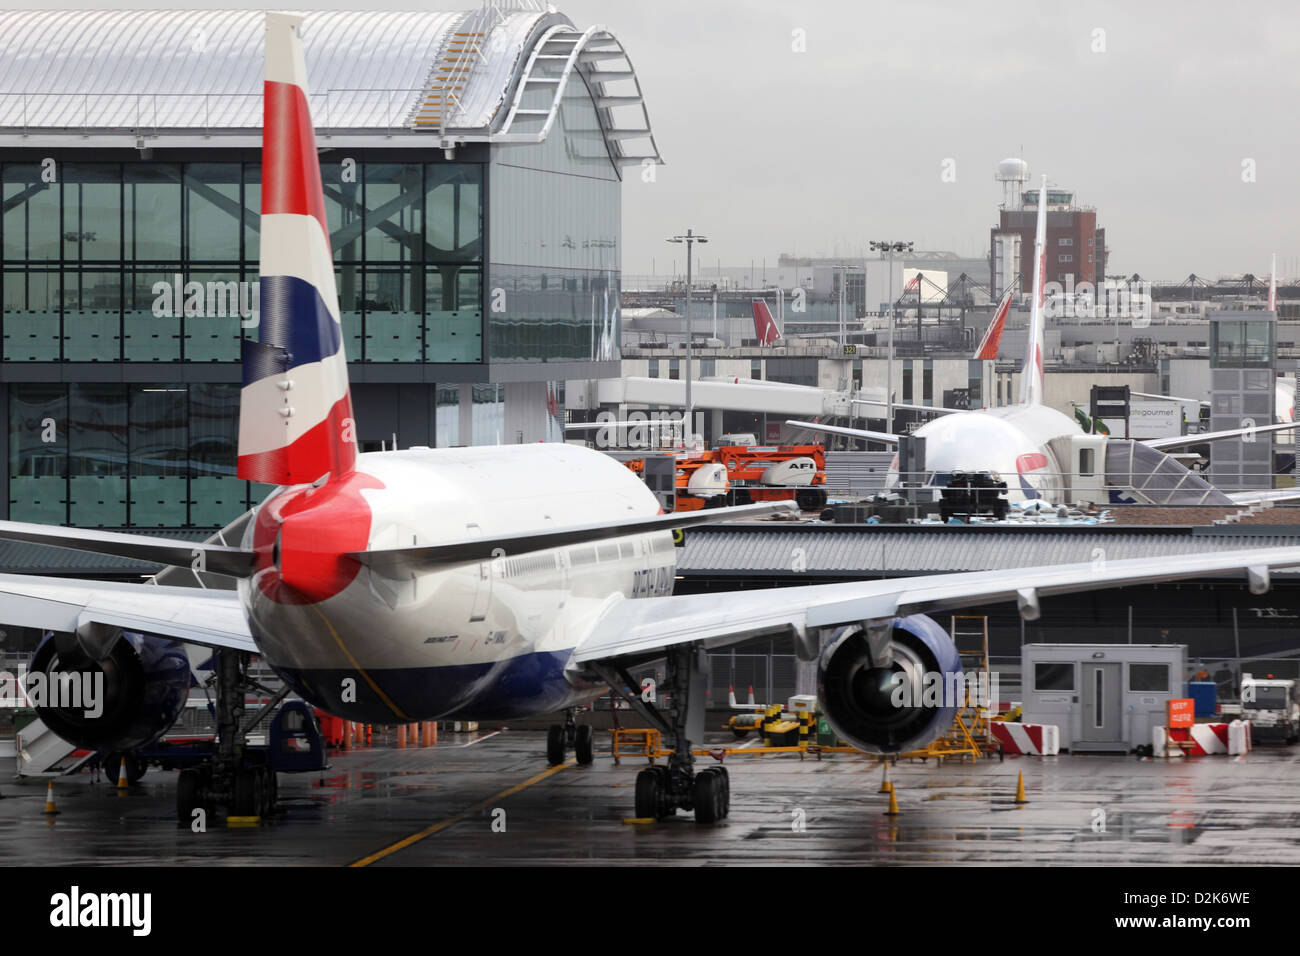 London, United Kingdom, British Airways aircraft at Heathrow Airport Terminal 5 - Stock Image